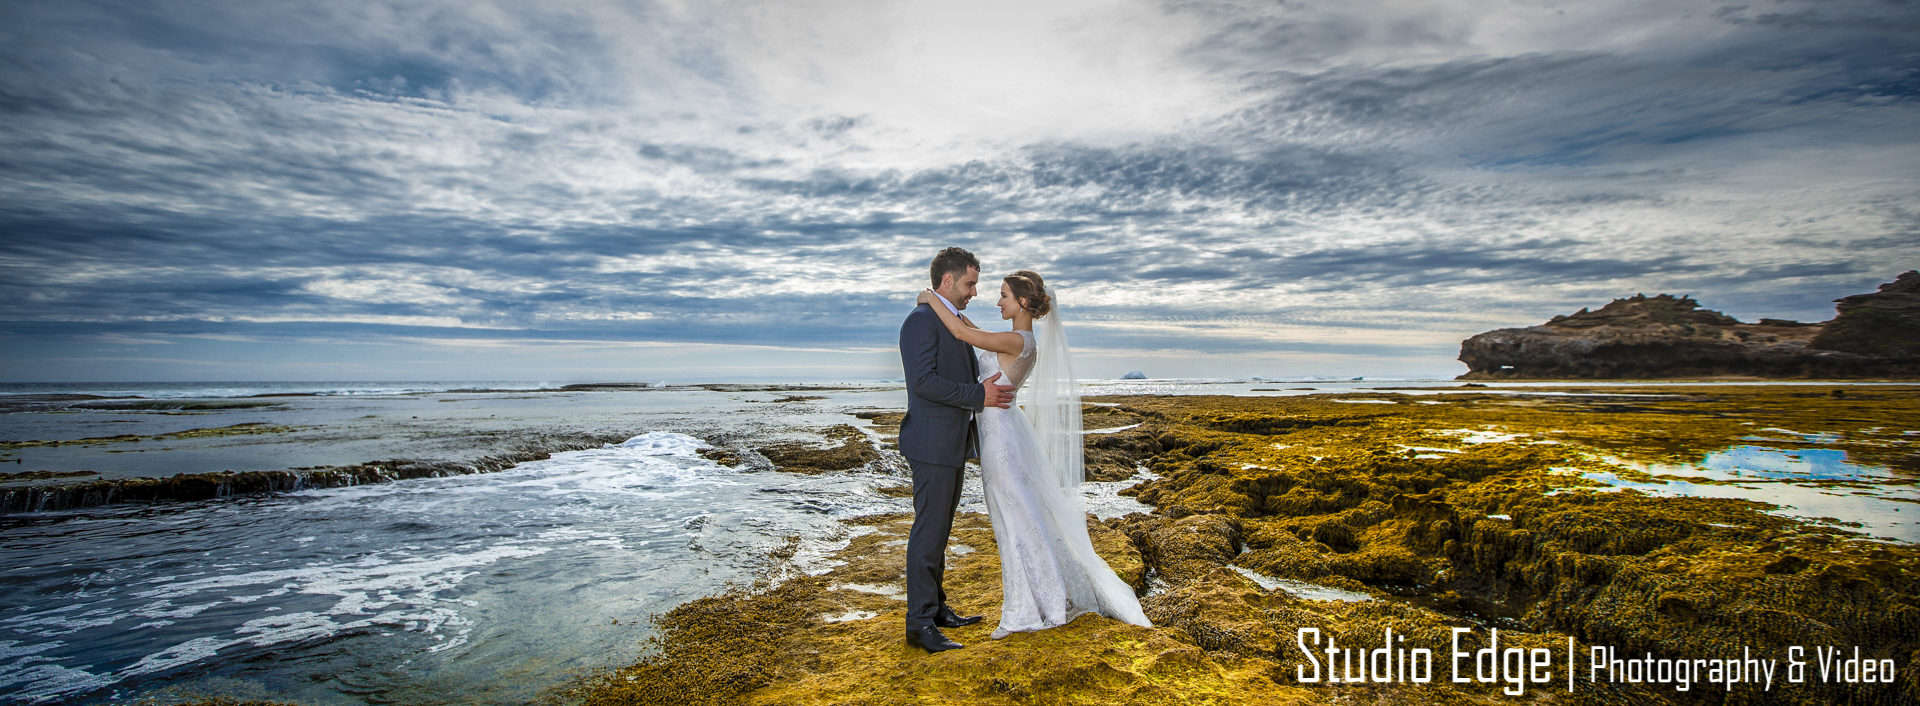 Wedding Photography and Video Melbourne